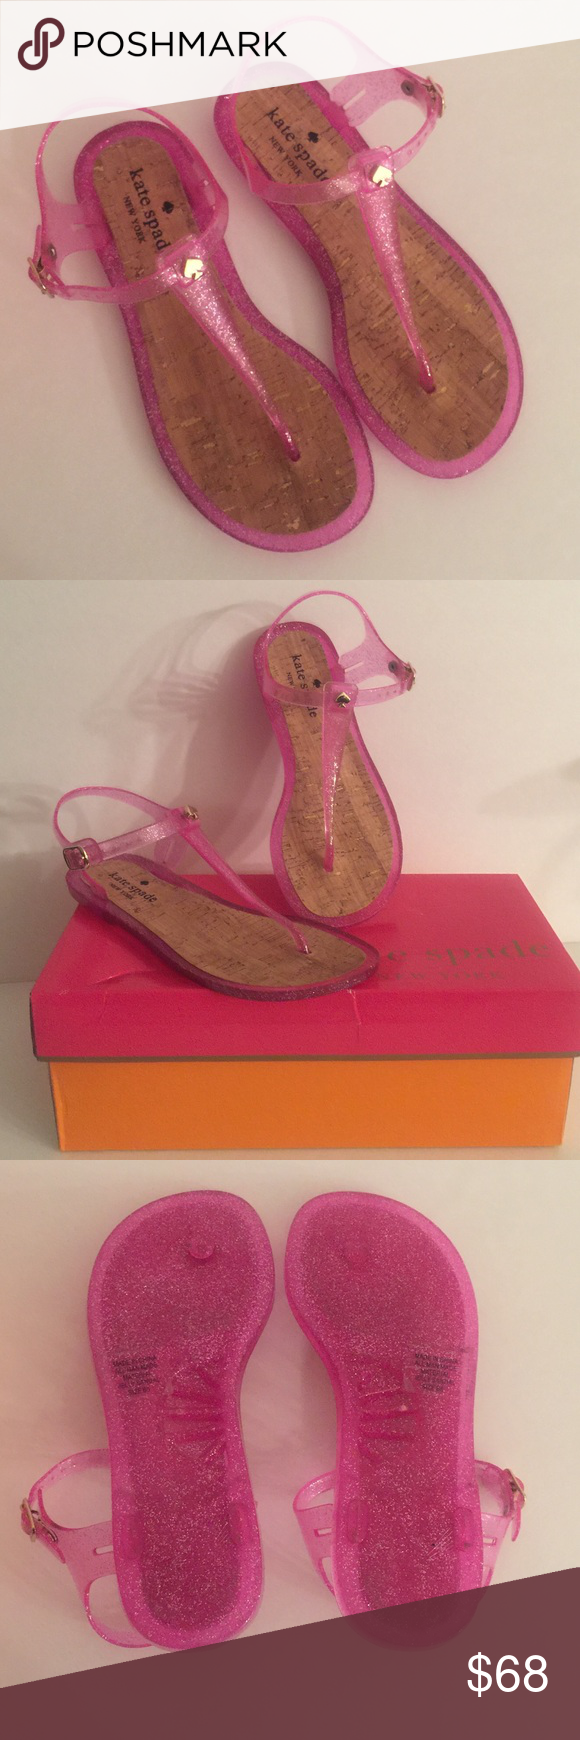 48b691a9c5c8 Kate Spade Pink  Yari  Jelly Glitter Sandals NEW Kate Spade Pink  Yari  T-  Strap Jelly Glitter Sandals Size 6. New with box as pictured. kate spade  Shoes ...